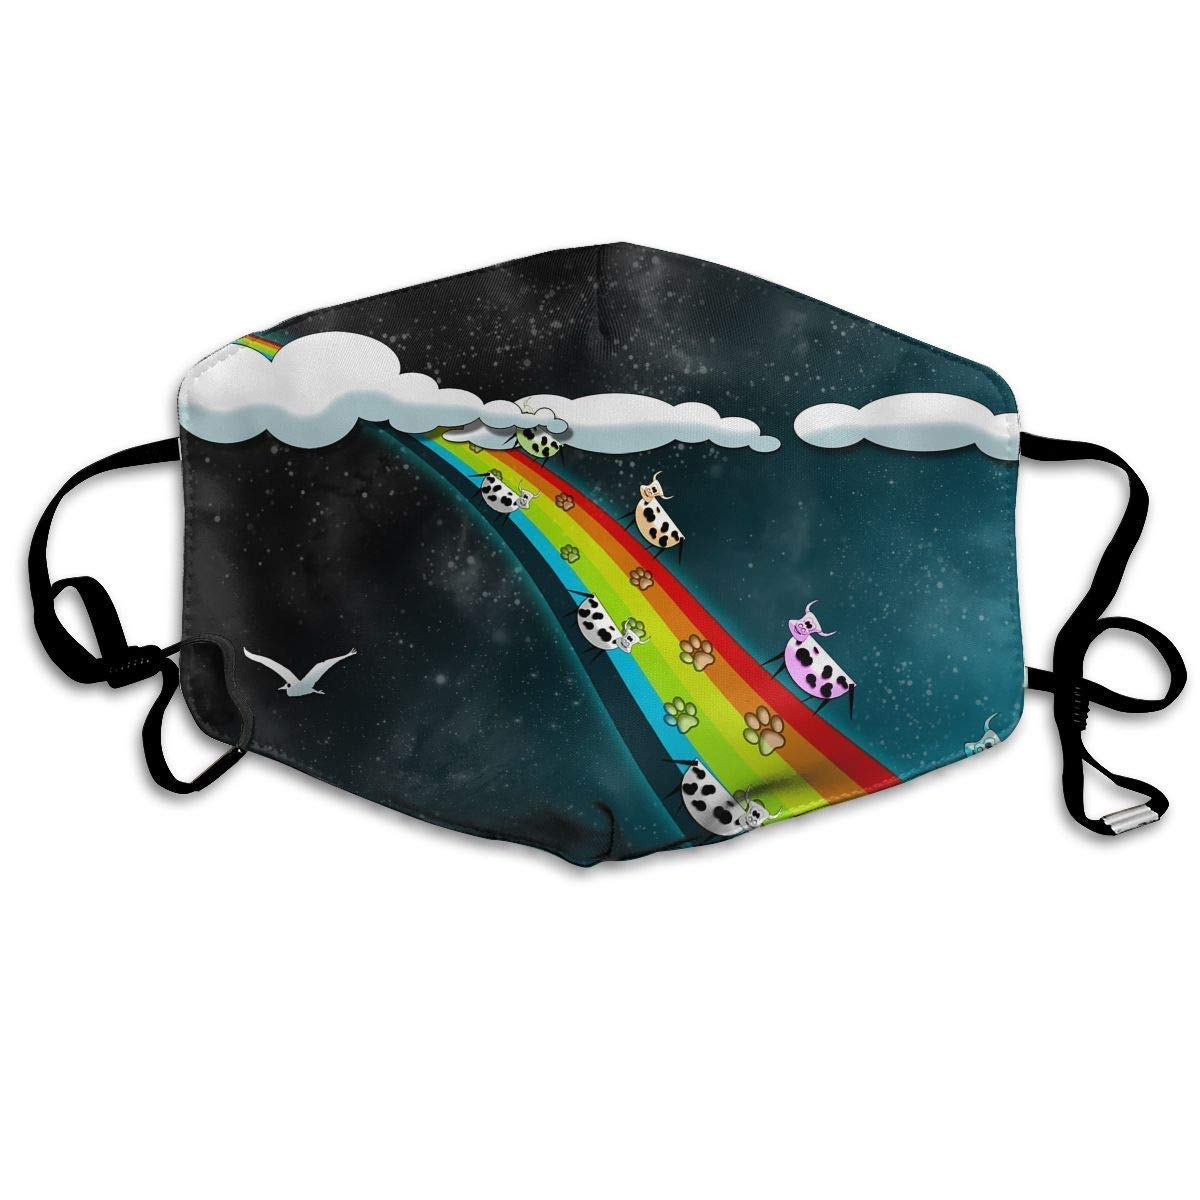 Daawqee Mascarillas, Anti Dust Pollution Mask Rainbow Moon Print Reusable Washable Earloop Face Mouth Mask for Men Women